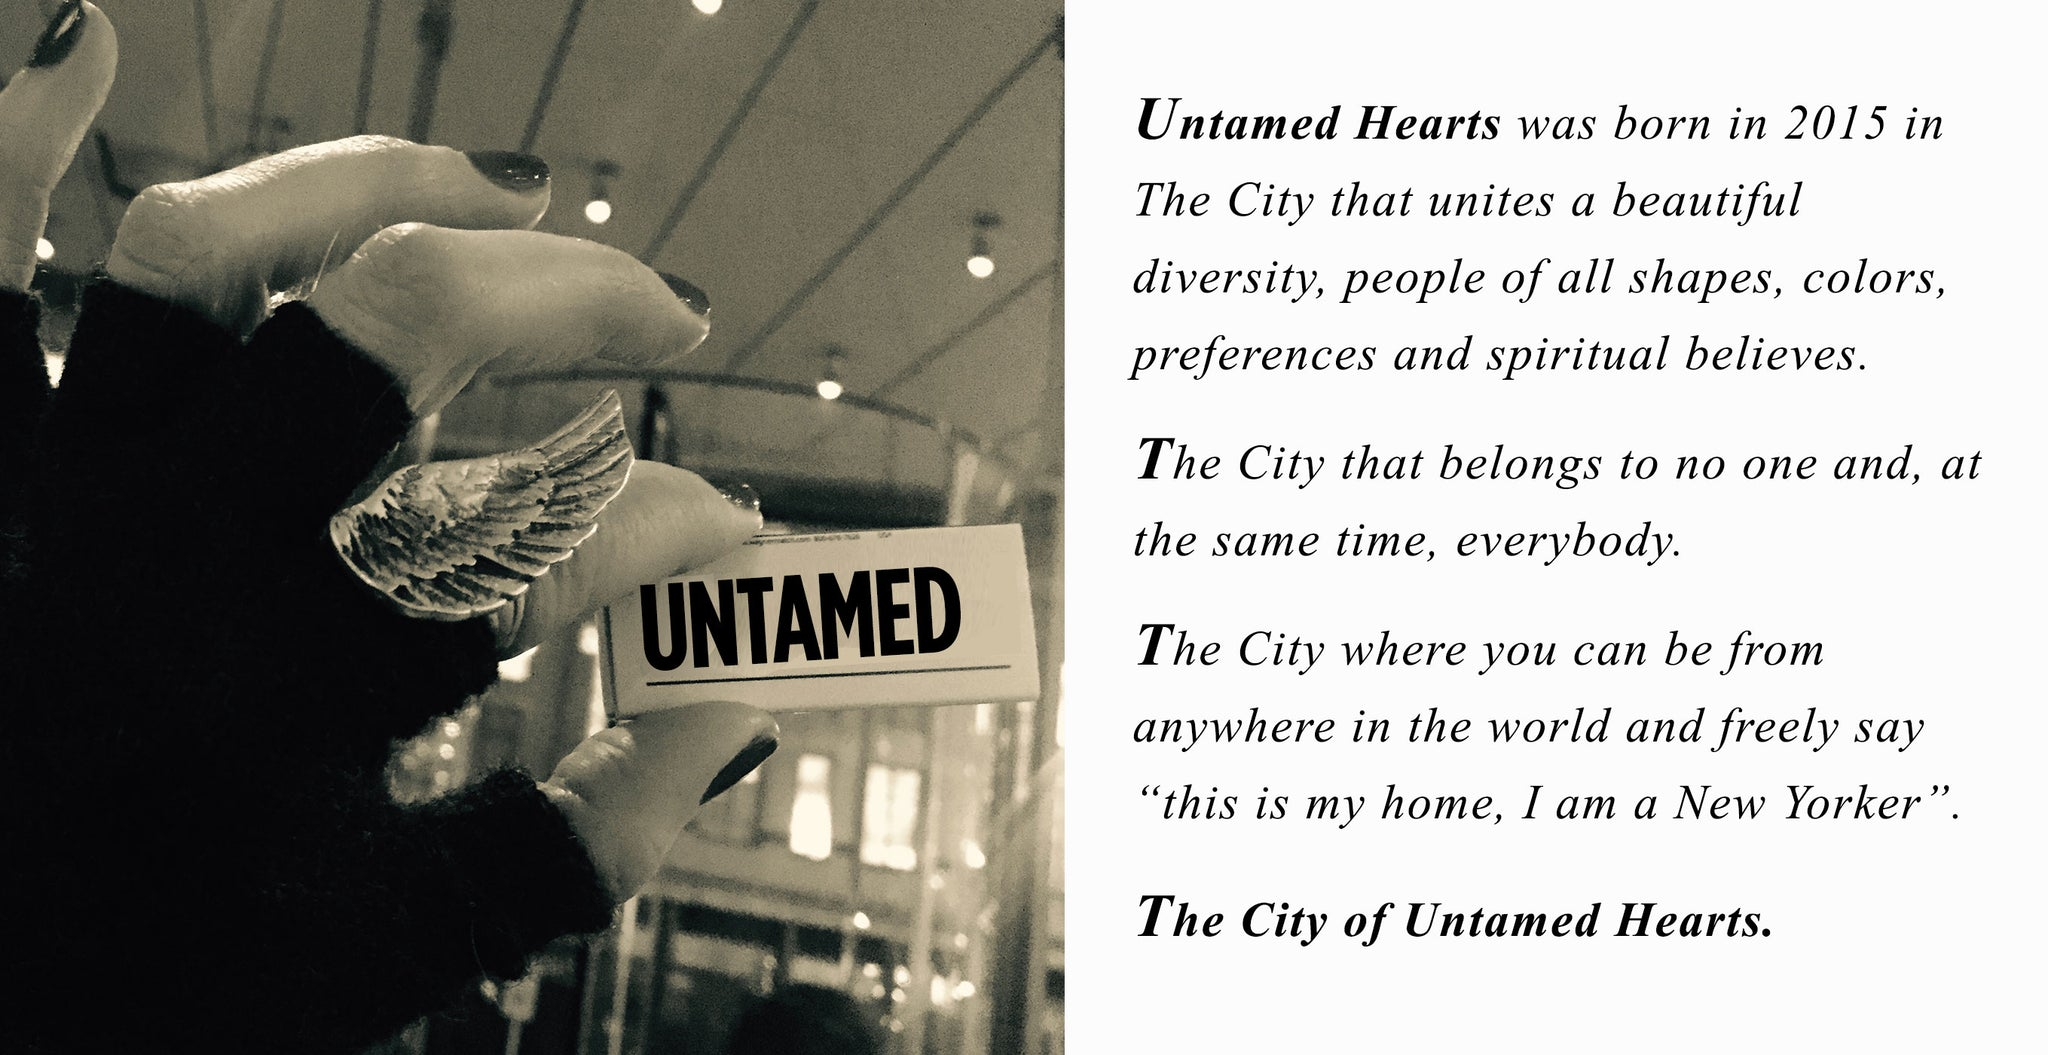 "Untamed Hearts was born in 2015 in  The City that unites a beautiful  diversity, people of all shapes, colors,  preferences and spiritual believes.  The City that belongs to no one and, at the same time, everybody.  The City where you can be from  anywhere in the world and freely say ""this is my home, I am a New Yorker"".  The City of Untamed Hearts."